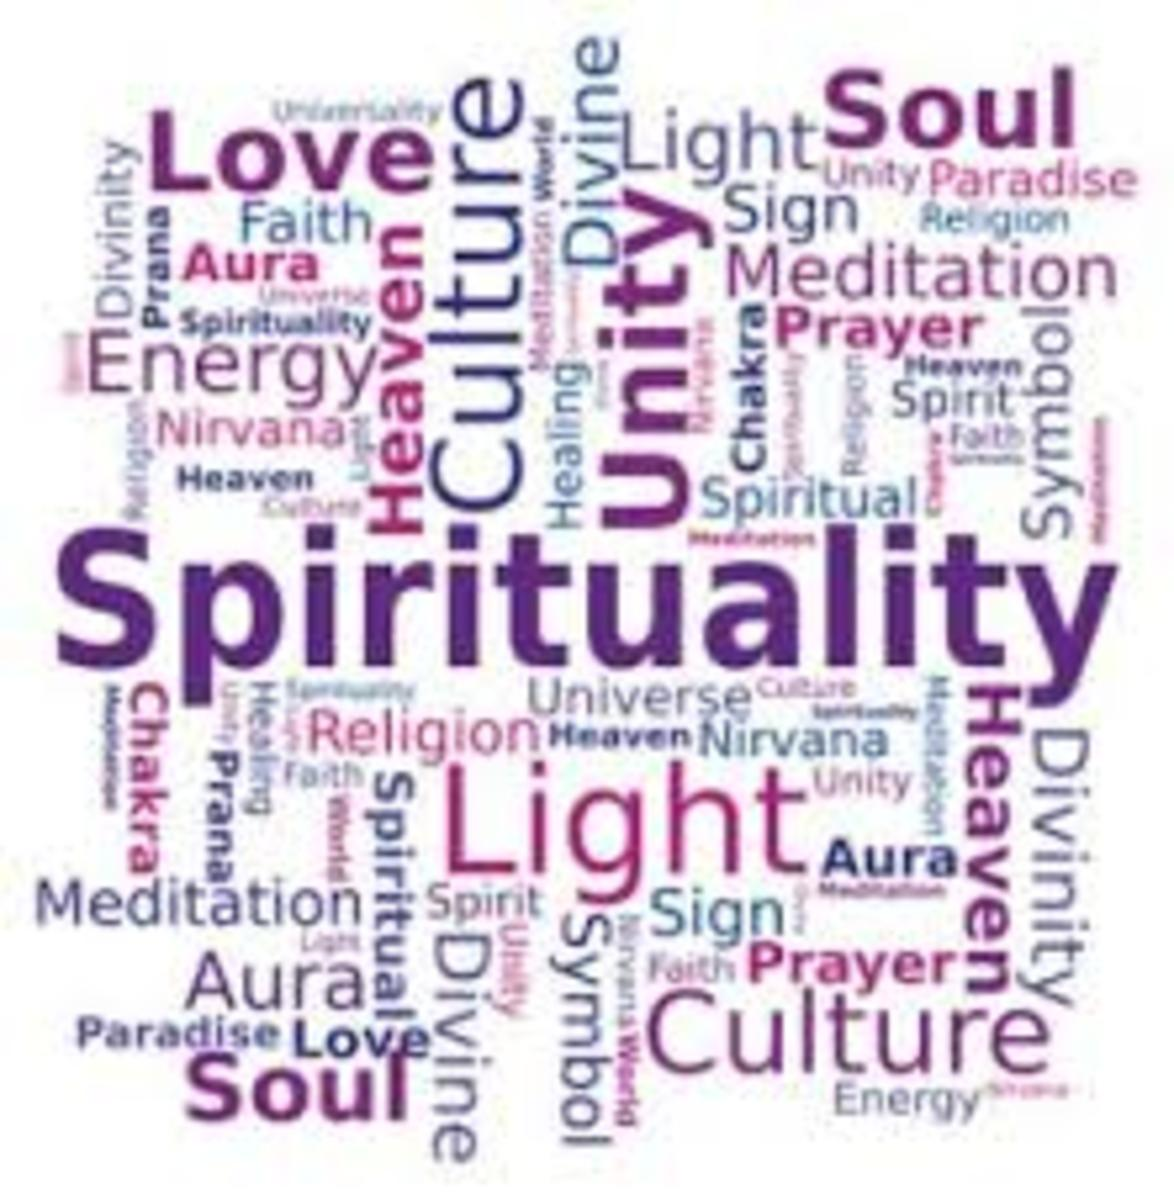 Spirituality is everything spiritual put together, the gods the angels and everything else in the universe including our selves form this spirituality. Spirituality seems to go around, forming a never ending cycle of the life forces of the universe.